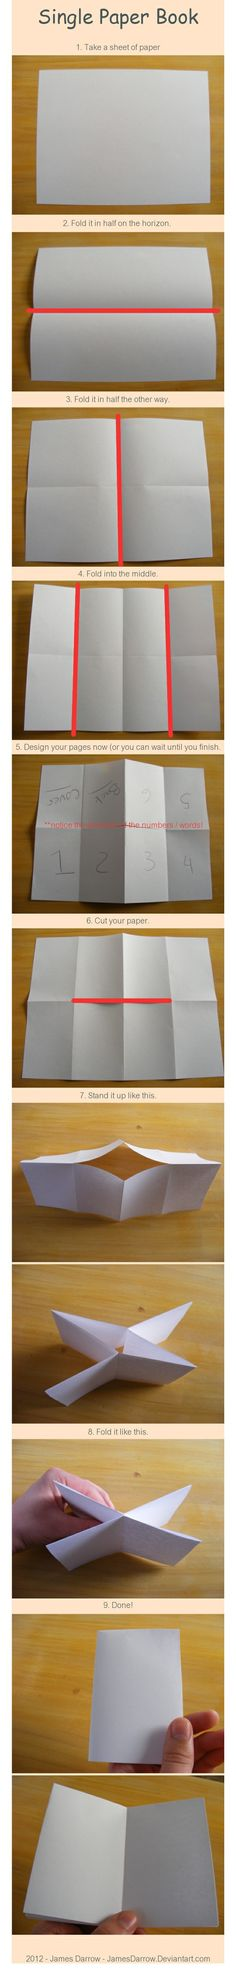 Single sheet of paper = mini book